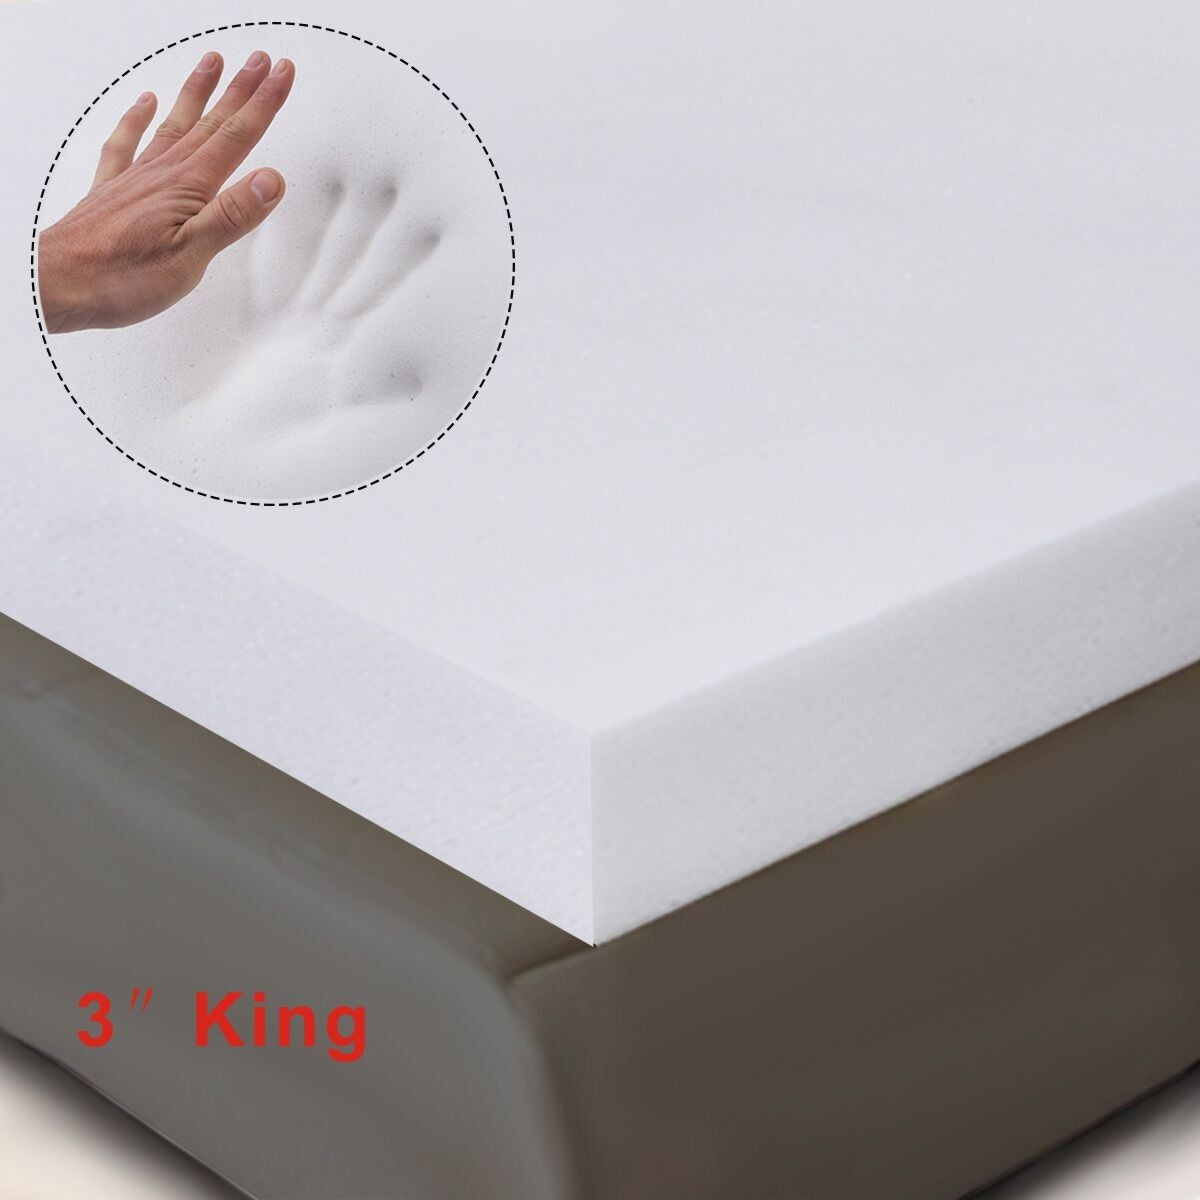 Costway 3'' King Size Memory Foam Mattress Pad, Bed Topper 80''x76''x3''